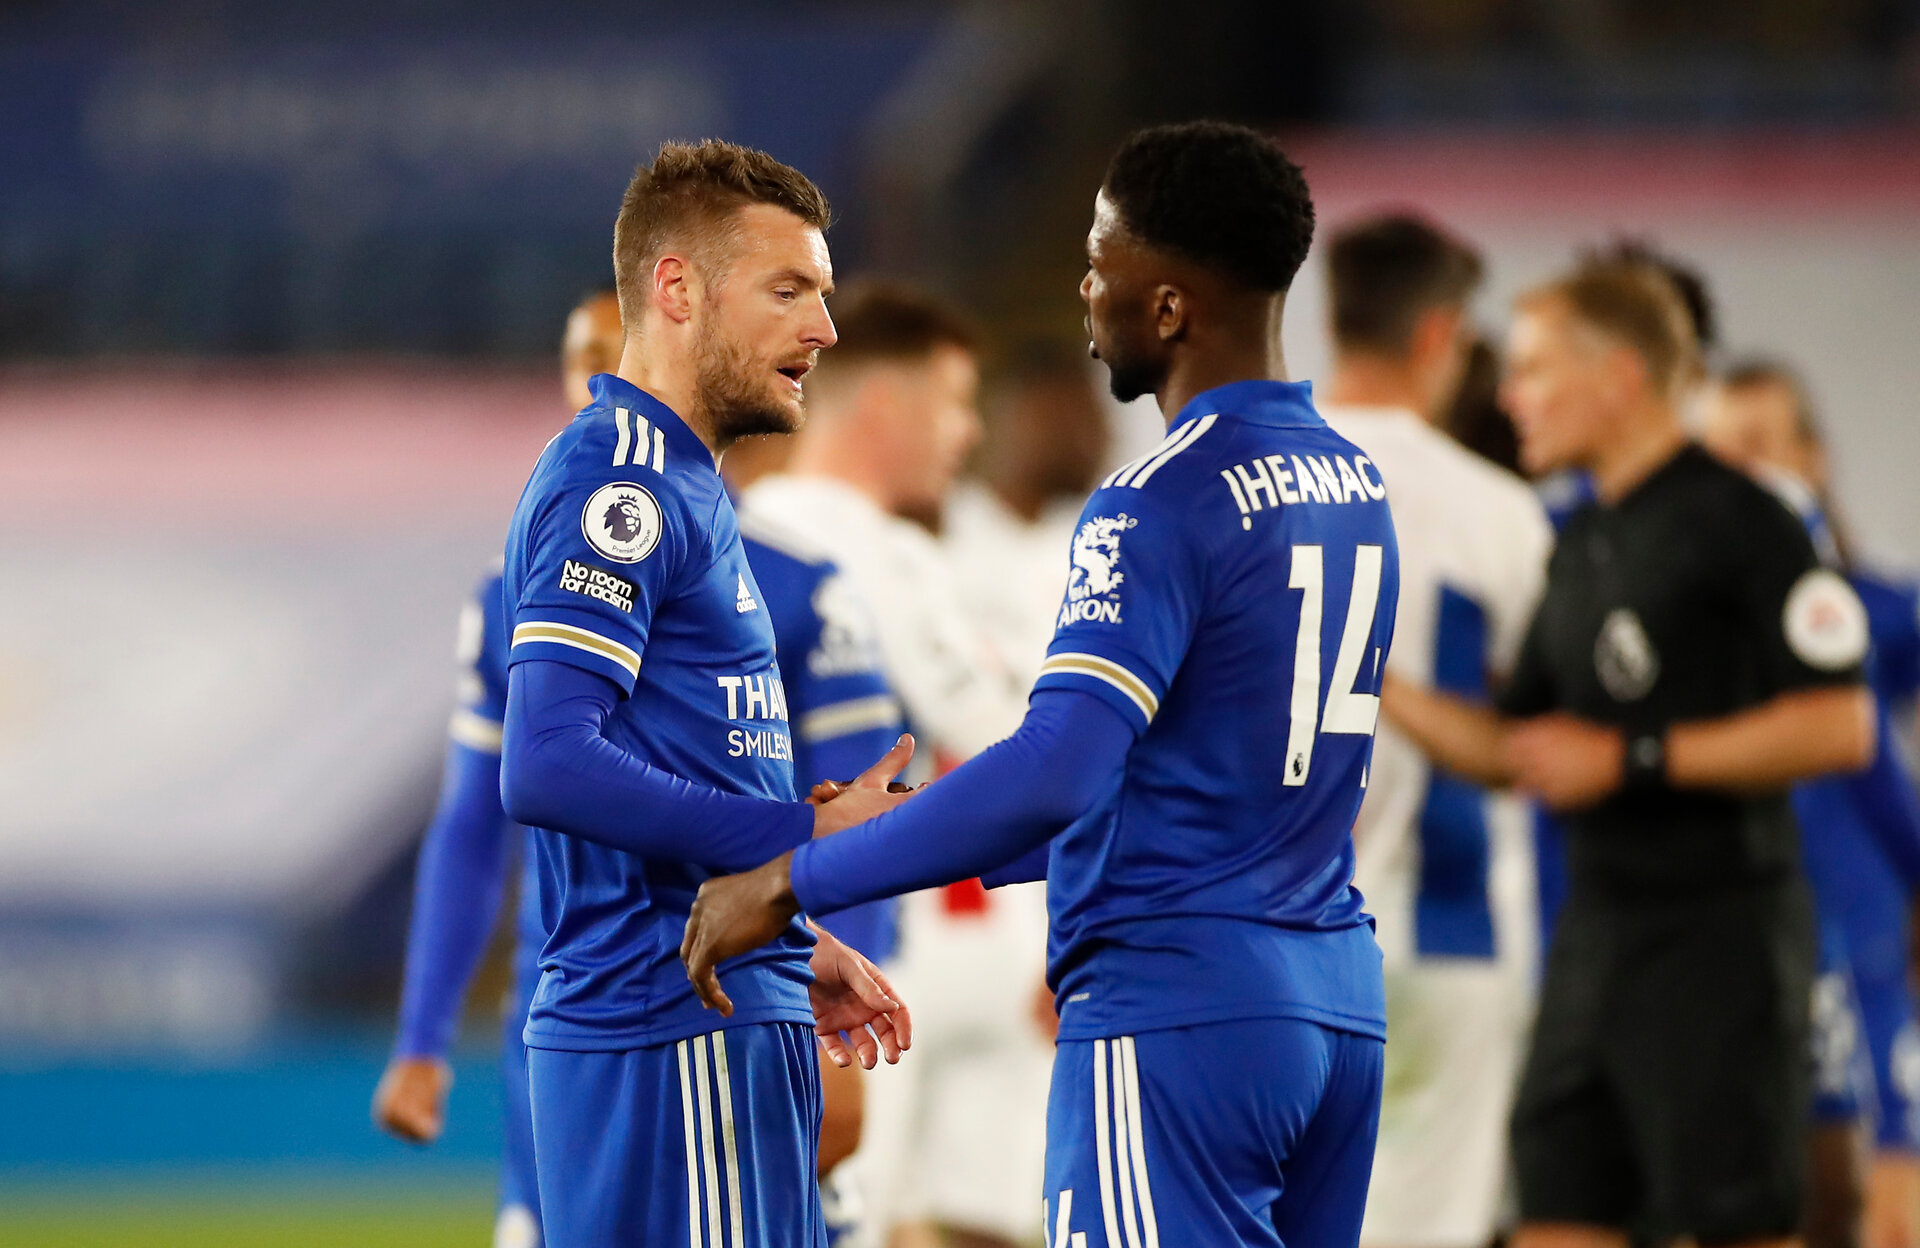 LEICESTER, ENGLAND - APRIL 26: Kelechi Iheanacho of Leicester City and Jamie Vardy of Leicester City celebrate on the final whistle during the Premier League match between Leicester City and Crystal Palace at The King Power Stadium on April 26, 2021 in Leicester, England. Sporting stadiums around the UK remain under strict restrictions due to the Coronavirus Pandemic as Government social distancing laws prohibit fans inside venues resulting in games being played behind closed doors.  (Photo by Andrew Boyers - Pool/Getty Images)